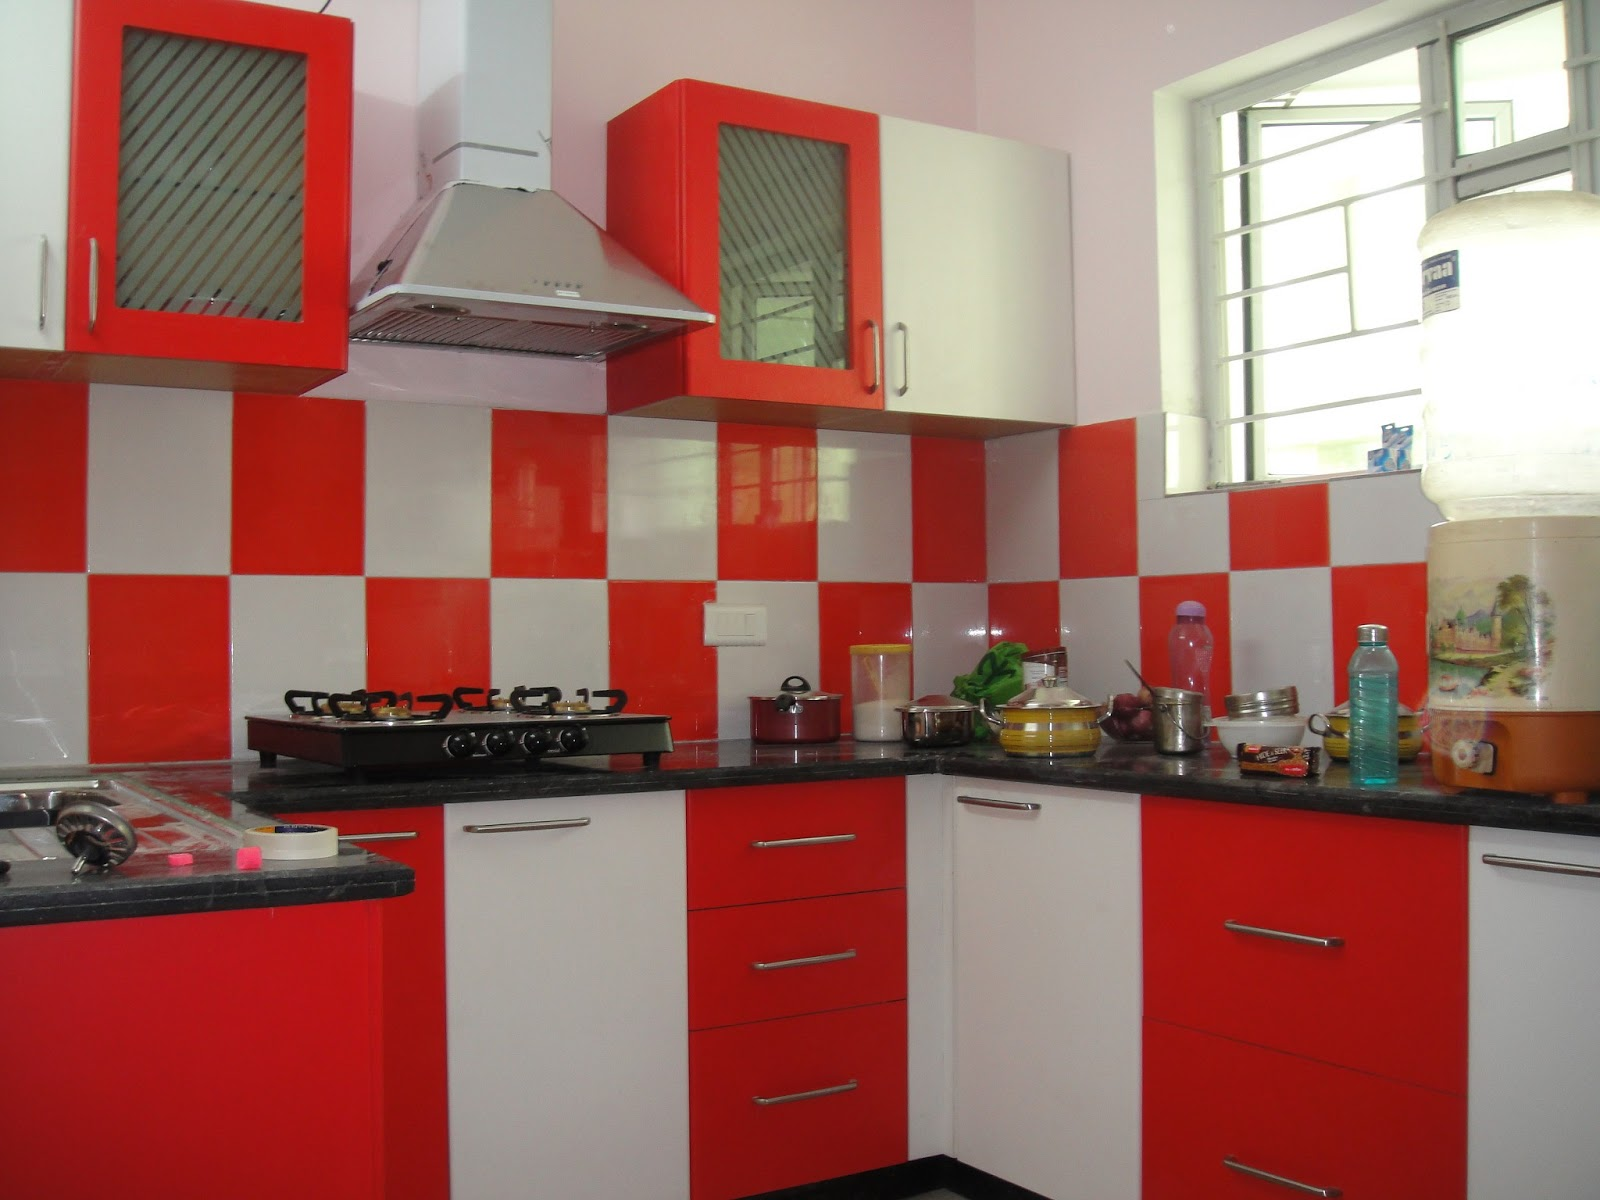 Designs Of Modular Kitchen Red White Modular Kitchen 23484820170513 Ponyiexnet